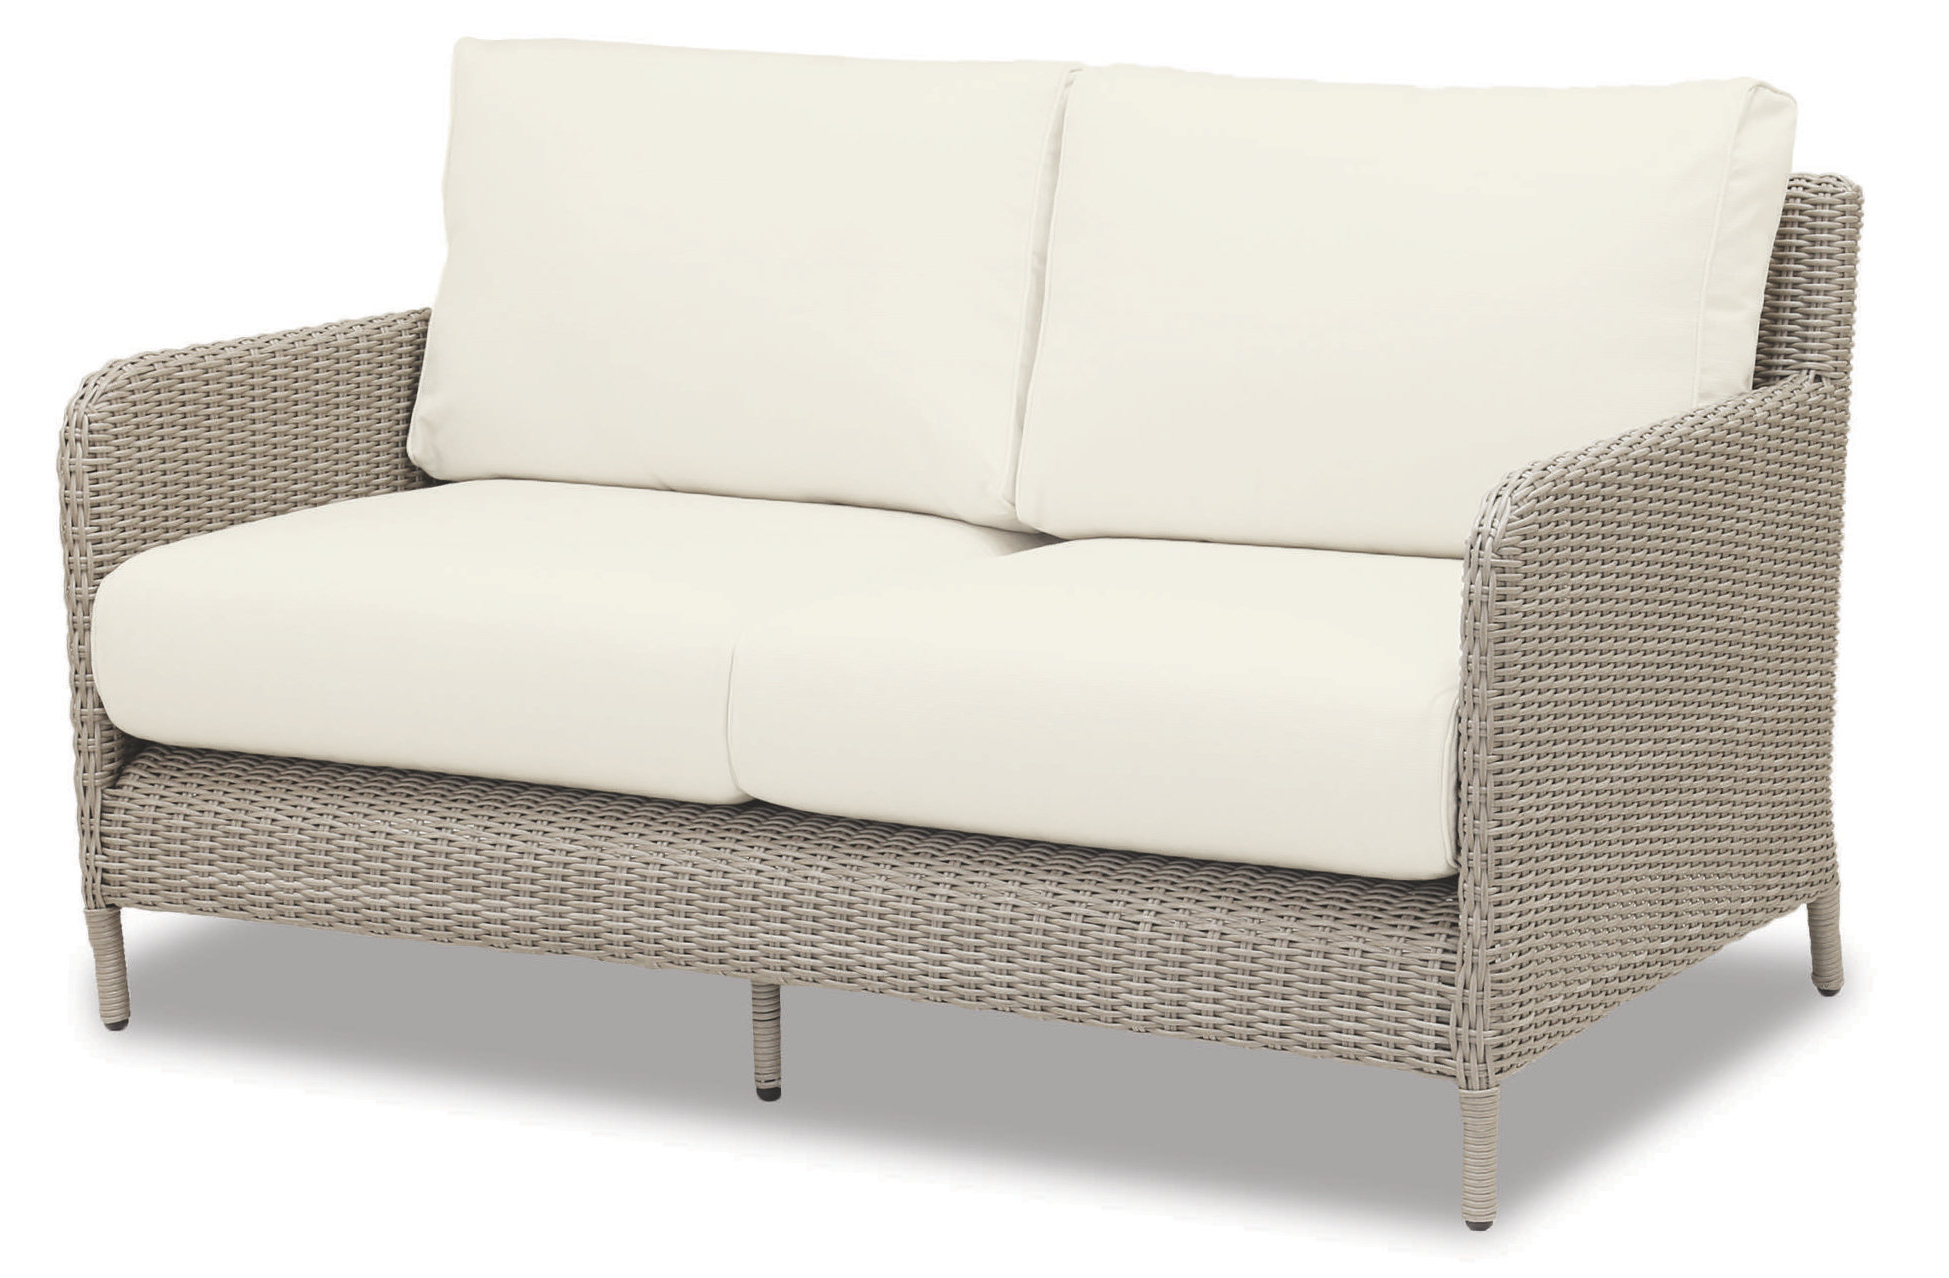 Widely Used Castelli Loveseats With Cushions Regarding Manhattan Loveseat With Cushions (View 20 of 20)